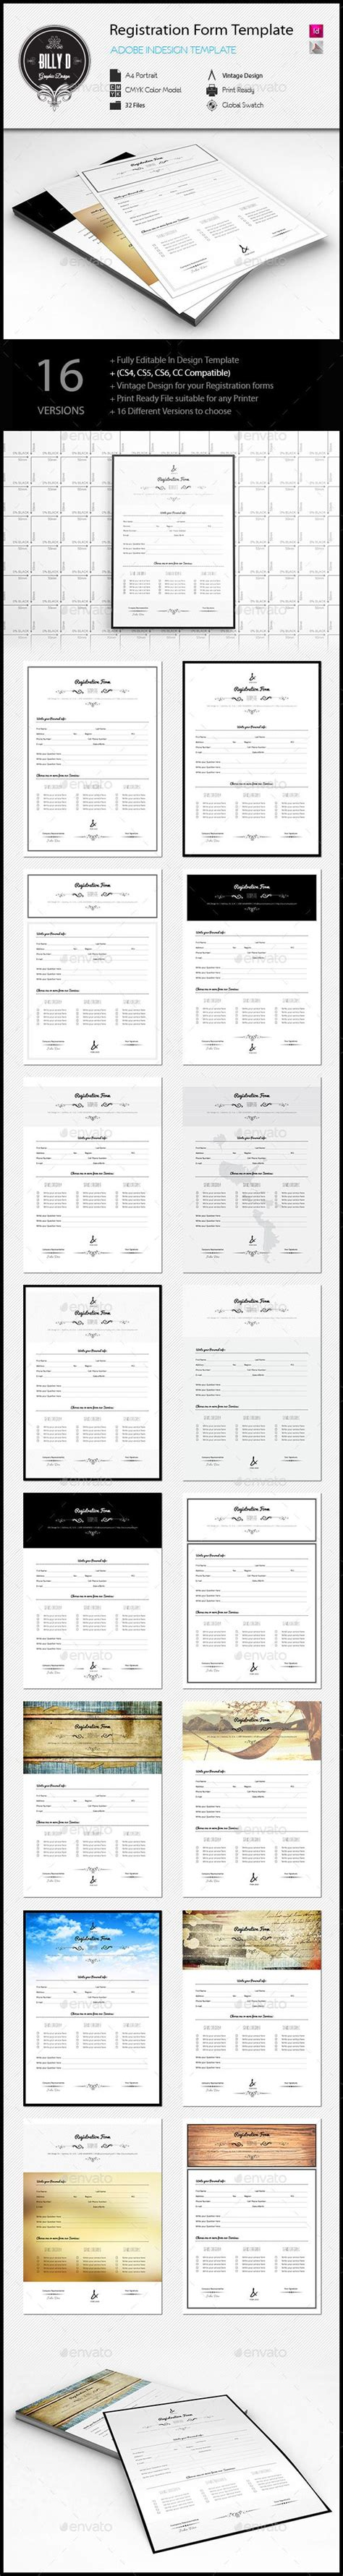 indesign template questionnaire 15 best ideas about registration form on pinterest ui